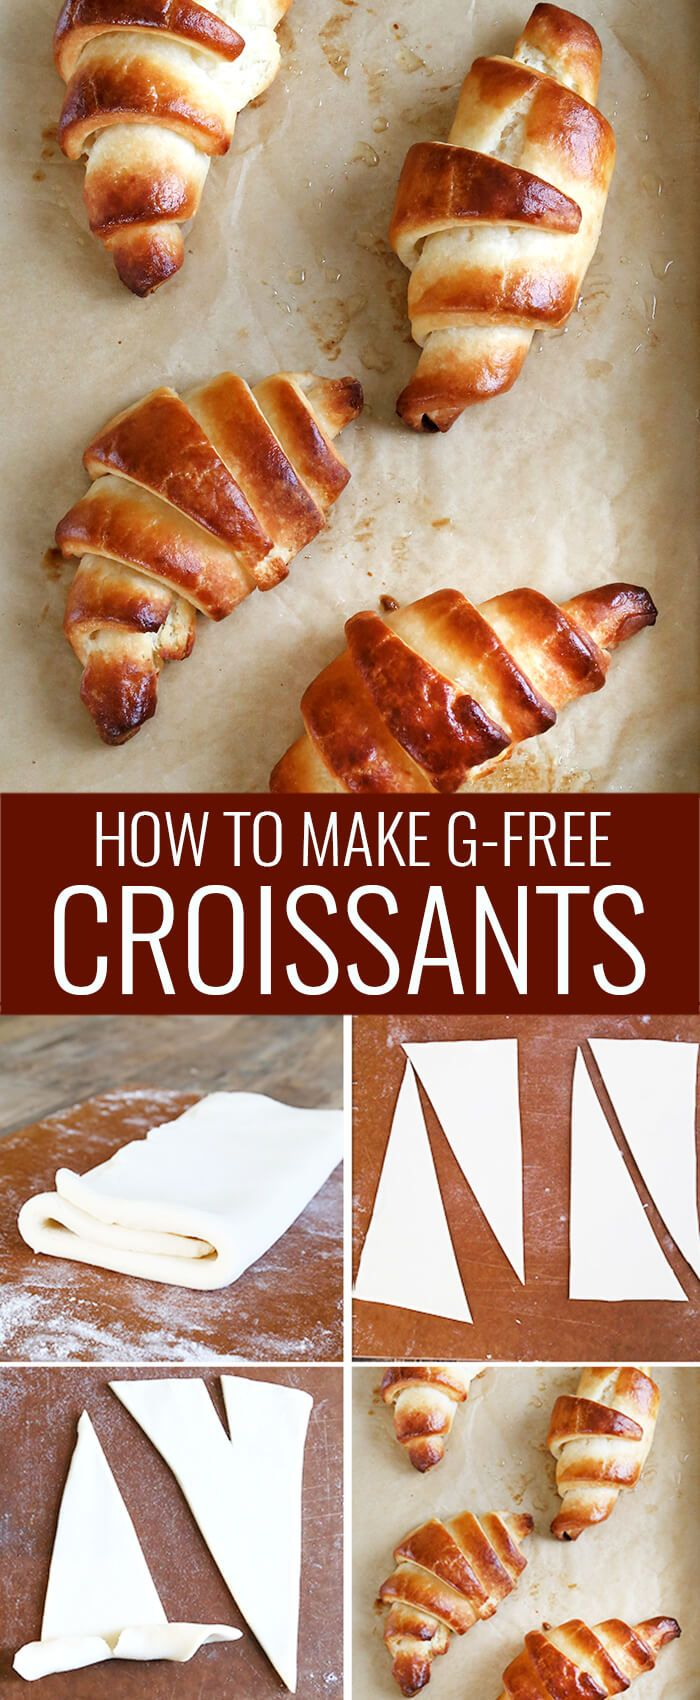 If you've ever wondered whether you could really make truly light and flaky gluten free croissants at home, this is the recipe and these are the step by step photos that will convince you forever. Yes you can! http://glutenfreeonashoestring.com/gluten-free-croissants/